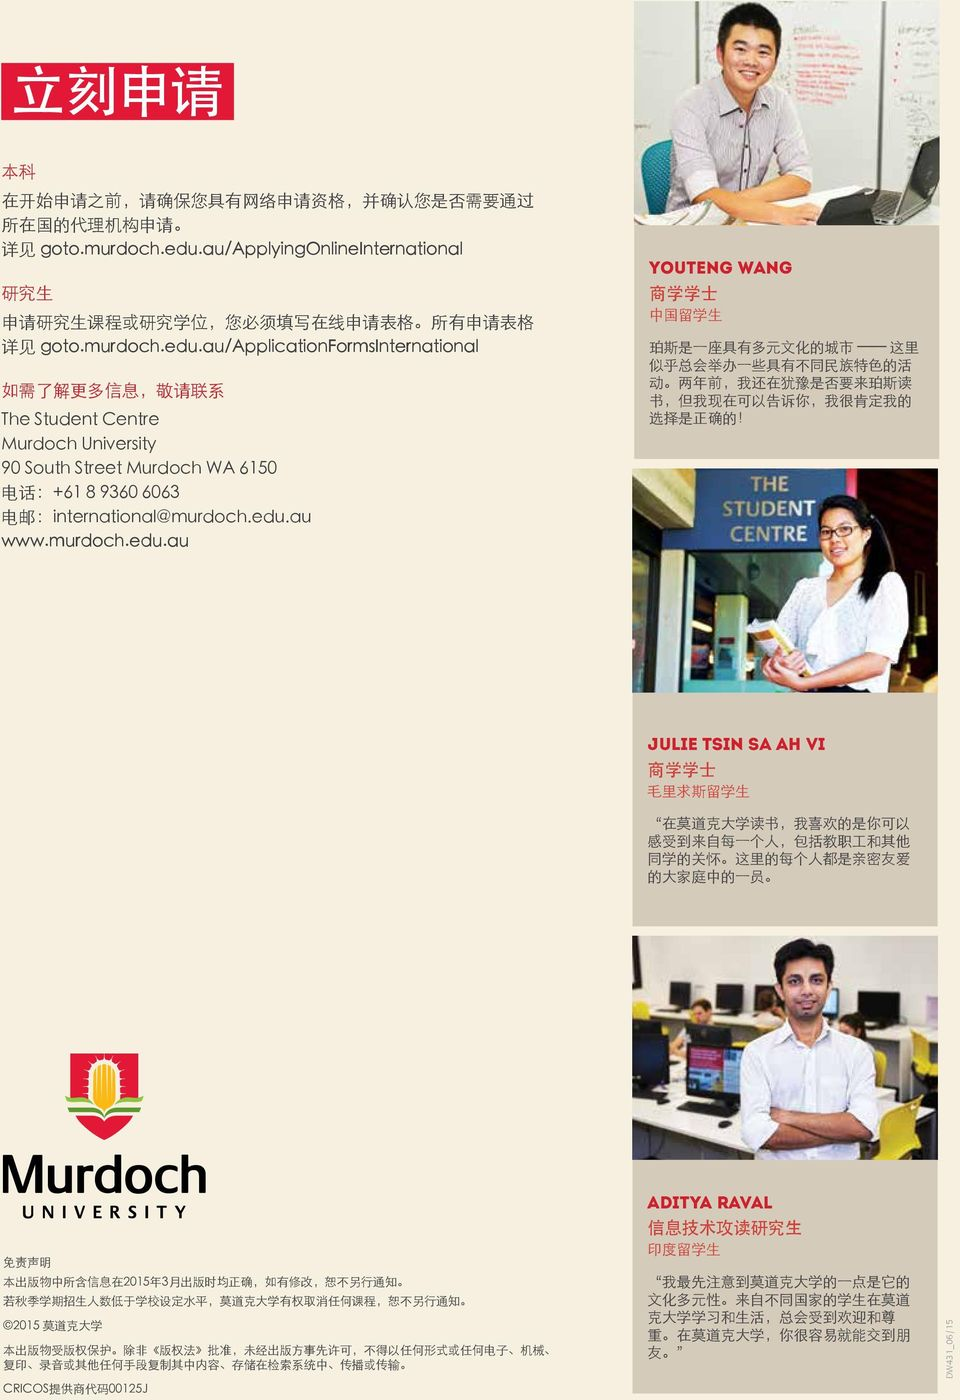 au/applicationformsinternational 如 需 了 解 更 多 信 息, 敬 请 联 系 The Student Centre Murdoch University 90 South Street Murdoch WA 6150 电 话 :+61 8 9360 6063 电 邮 :international@murdoch.edu.